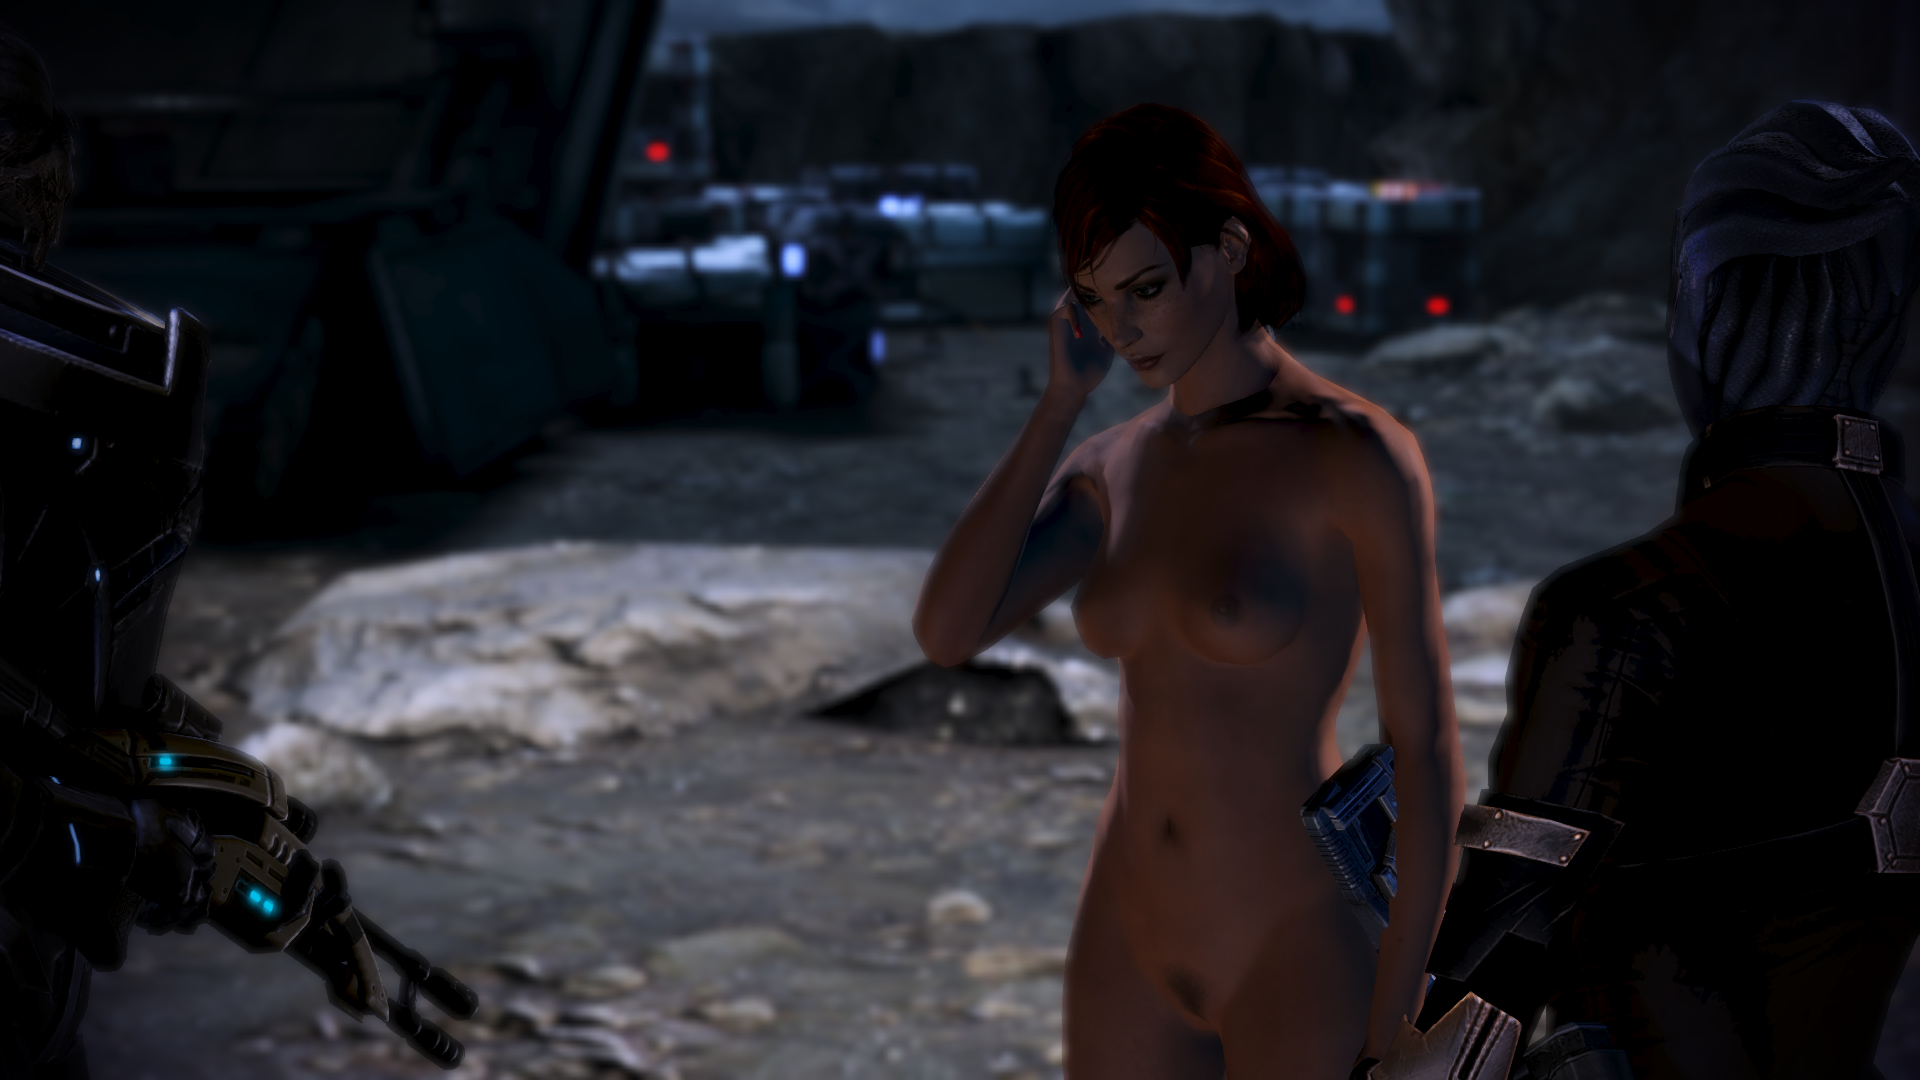 Mass effect nude skin patch anime picture